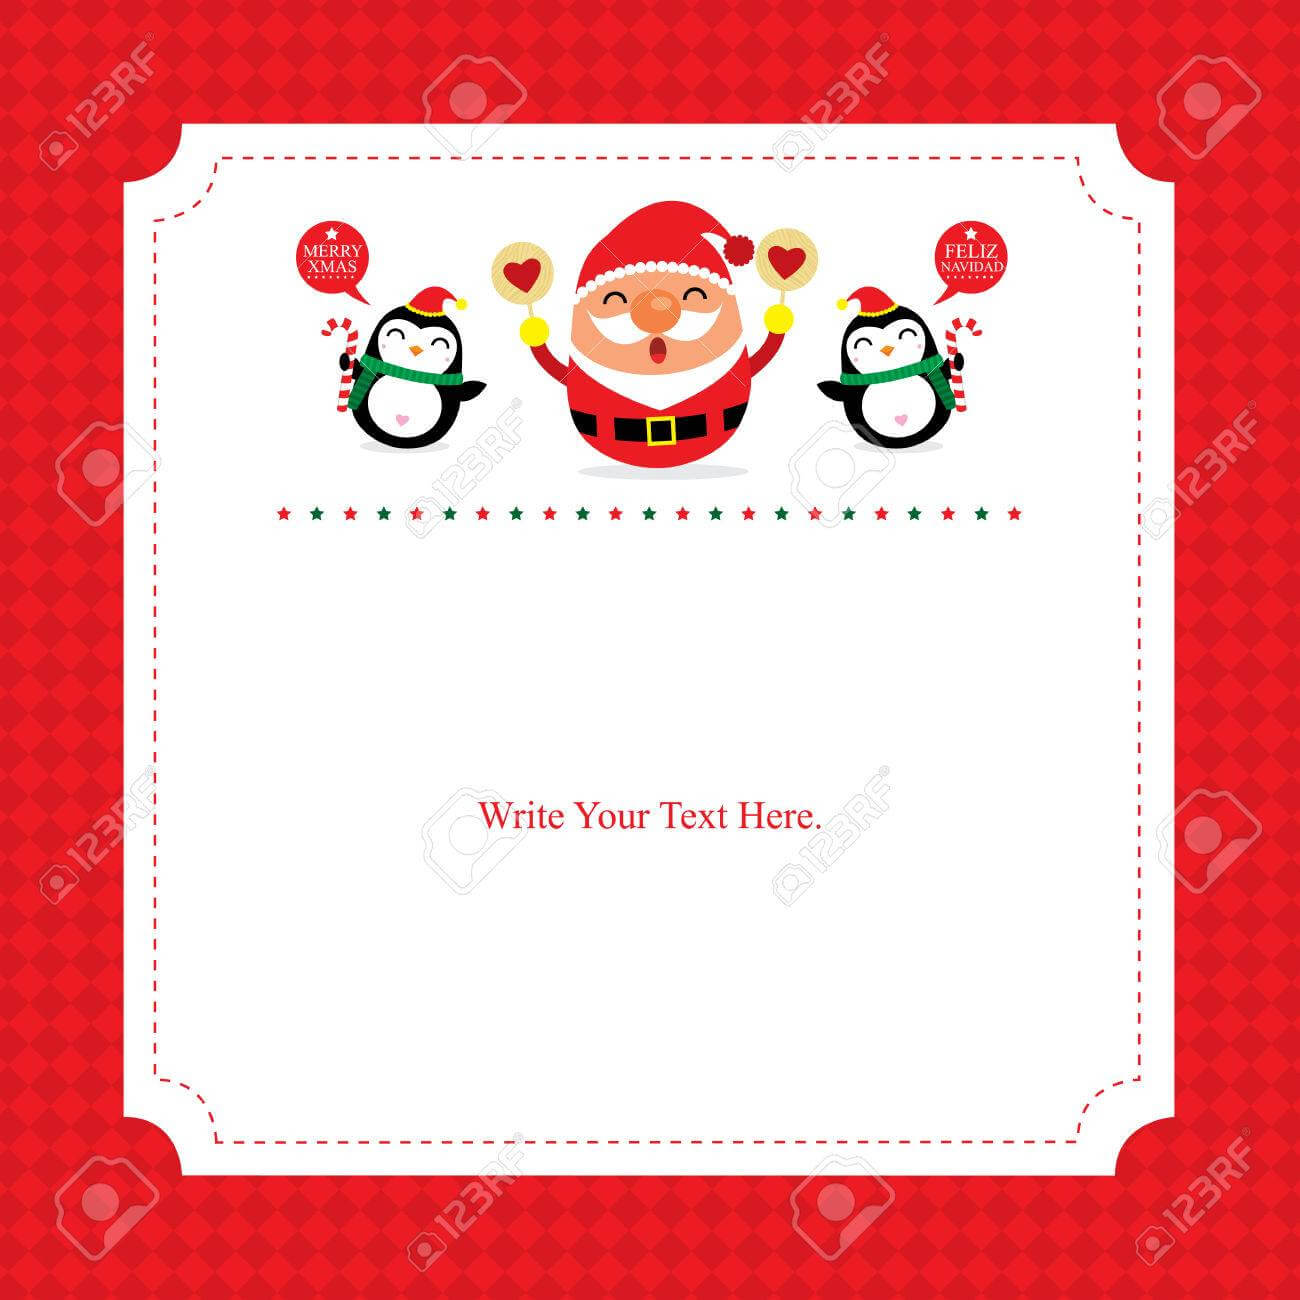 Christmas Card Template Santa Claus pertaining to Happy Holidays Card Template